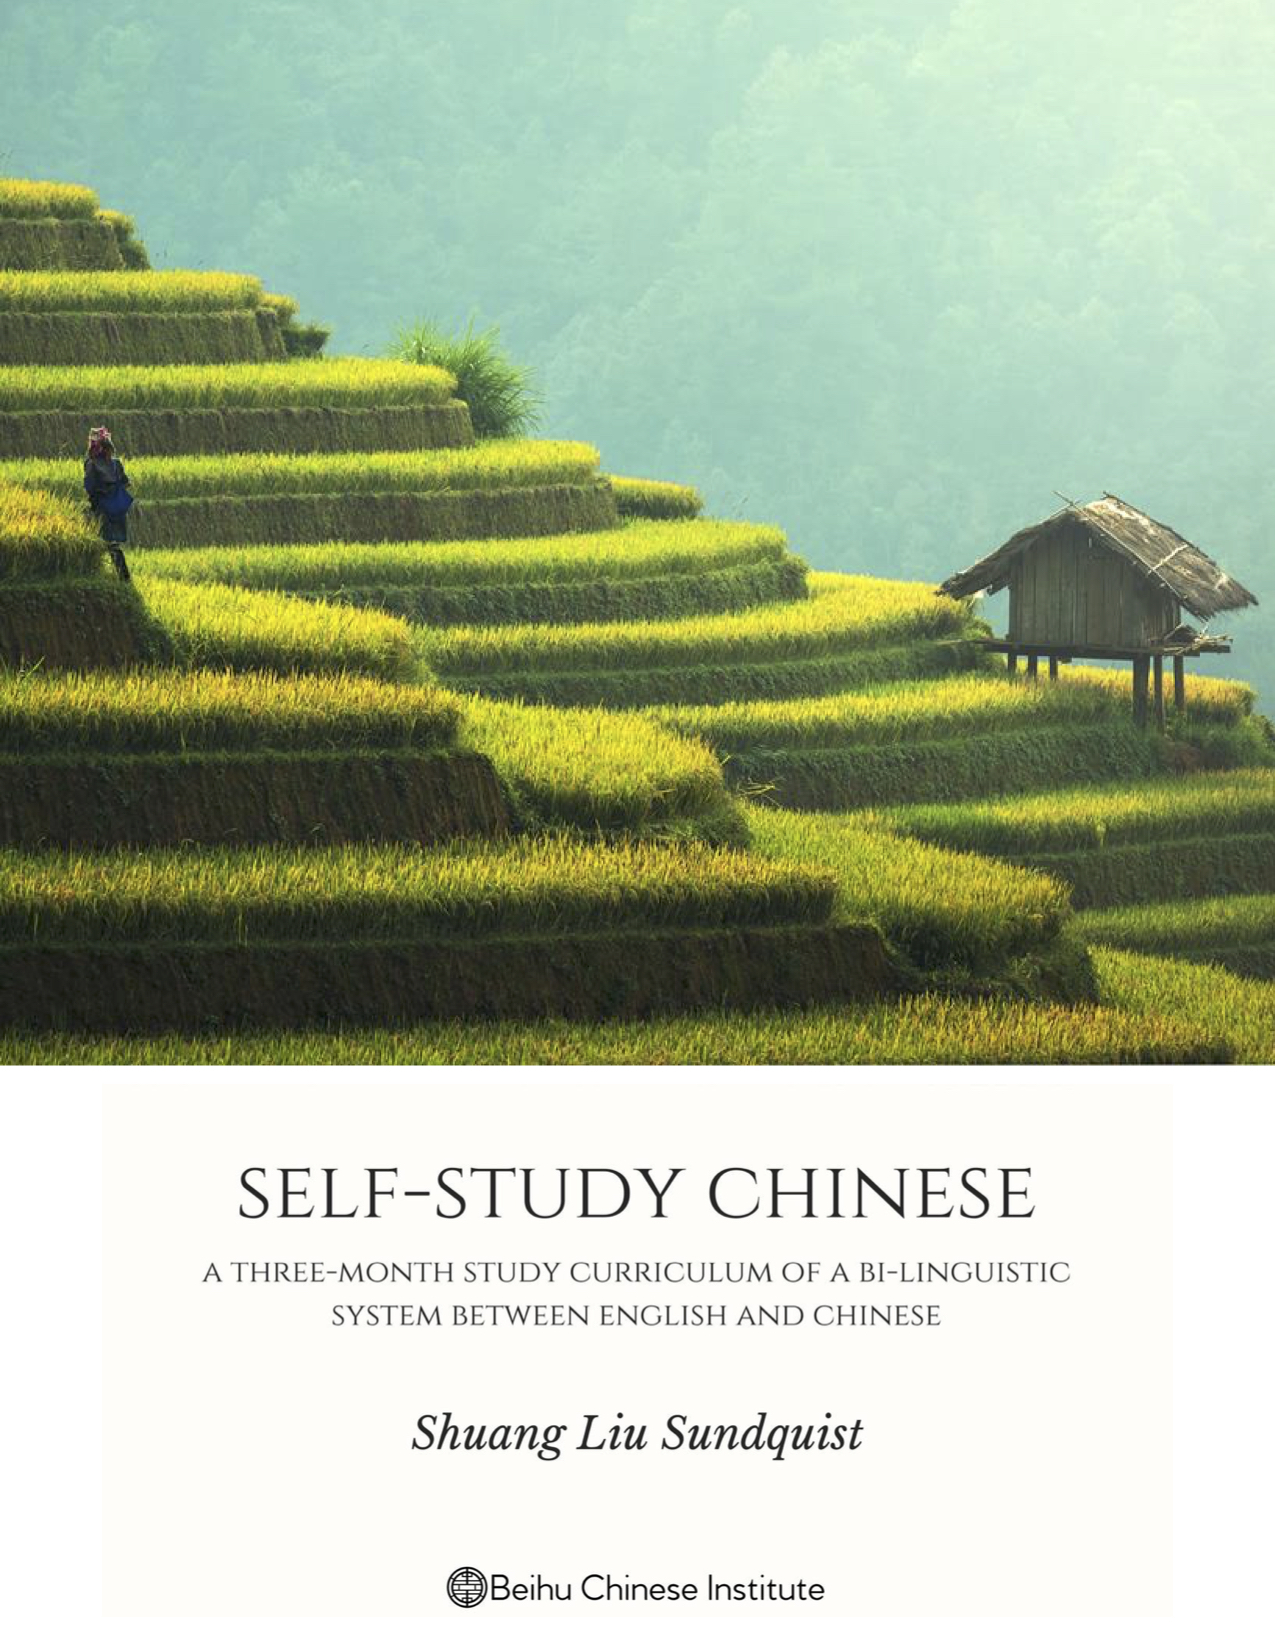 Self-Study Chinese _ A Three-Month Study Curriculum of a Bi-linguistic System Between English and Chinese.jpg